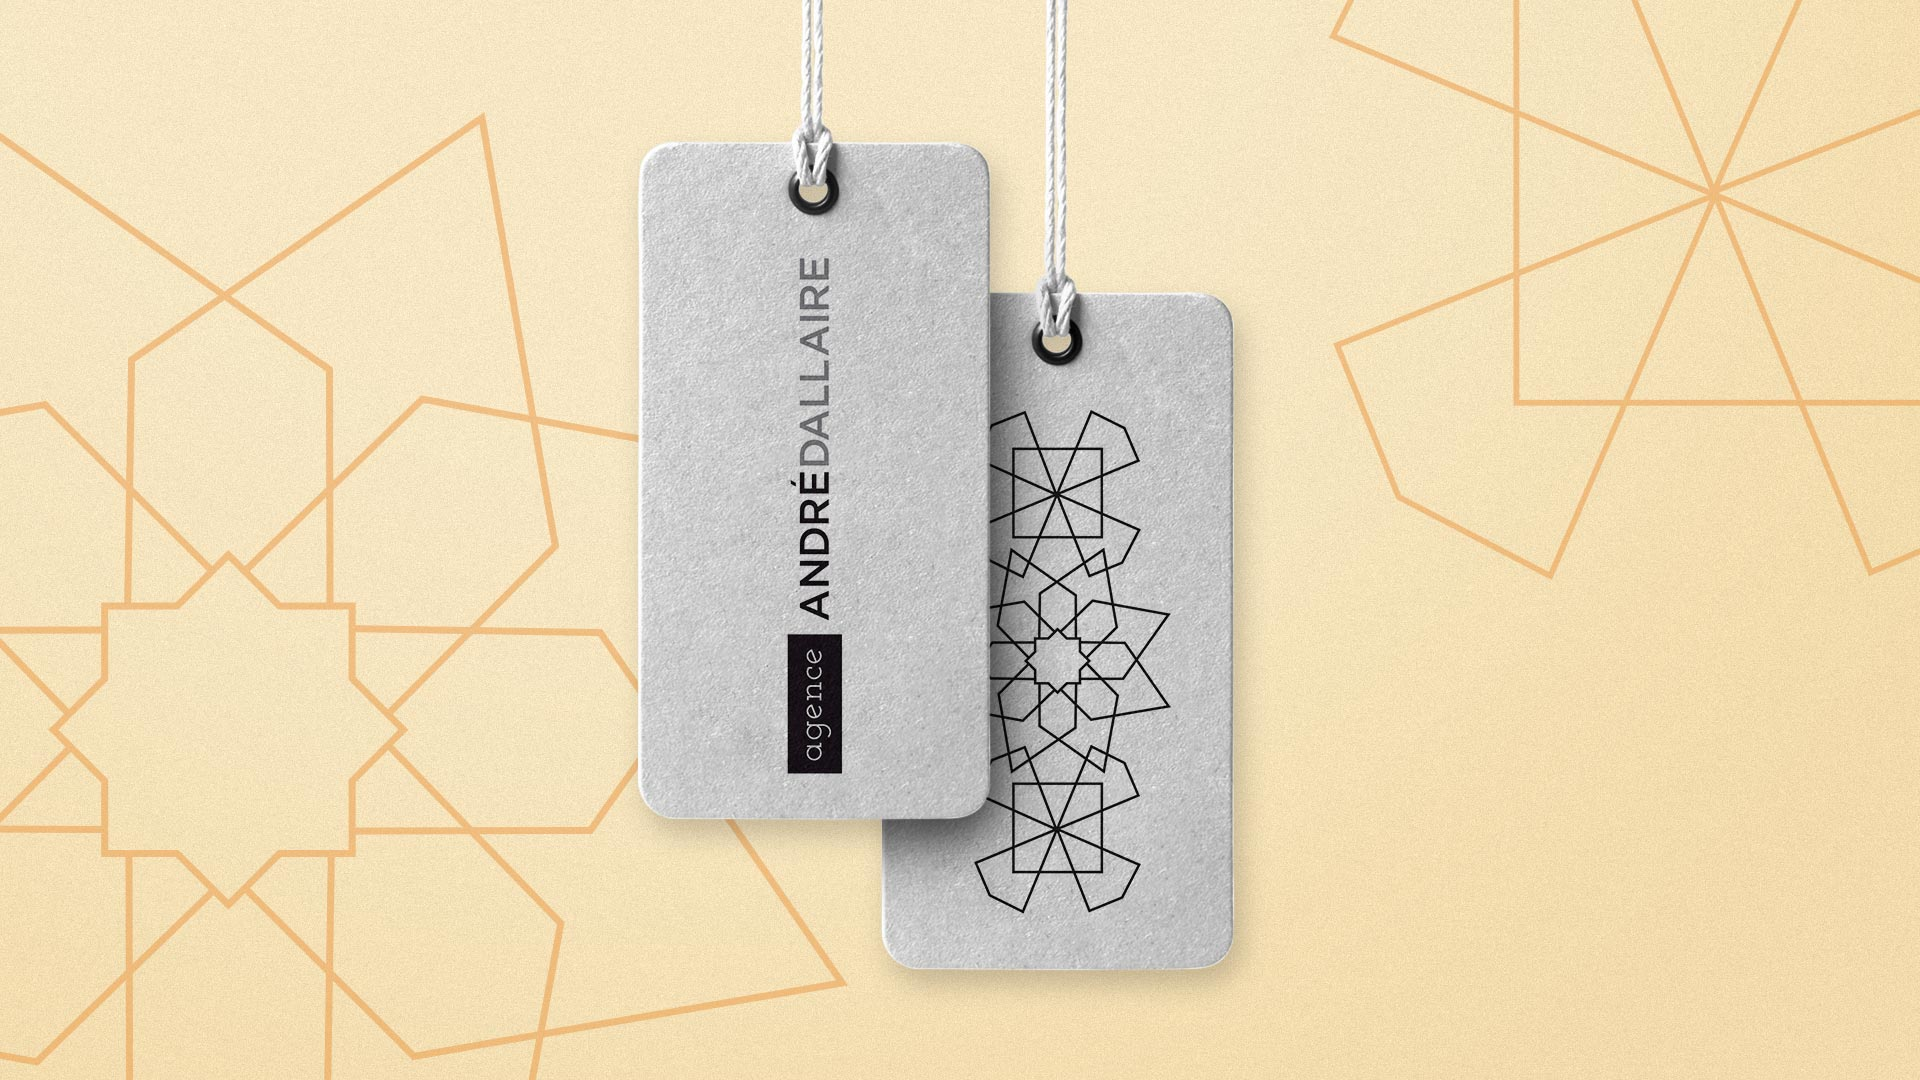 Agence Andre Dallaire Tag Mockup